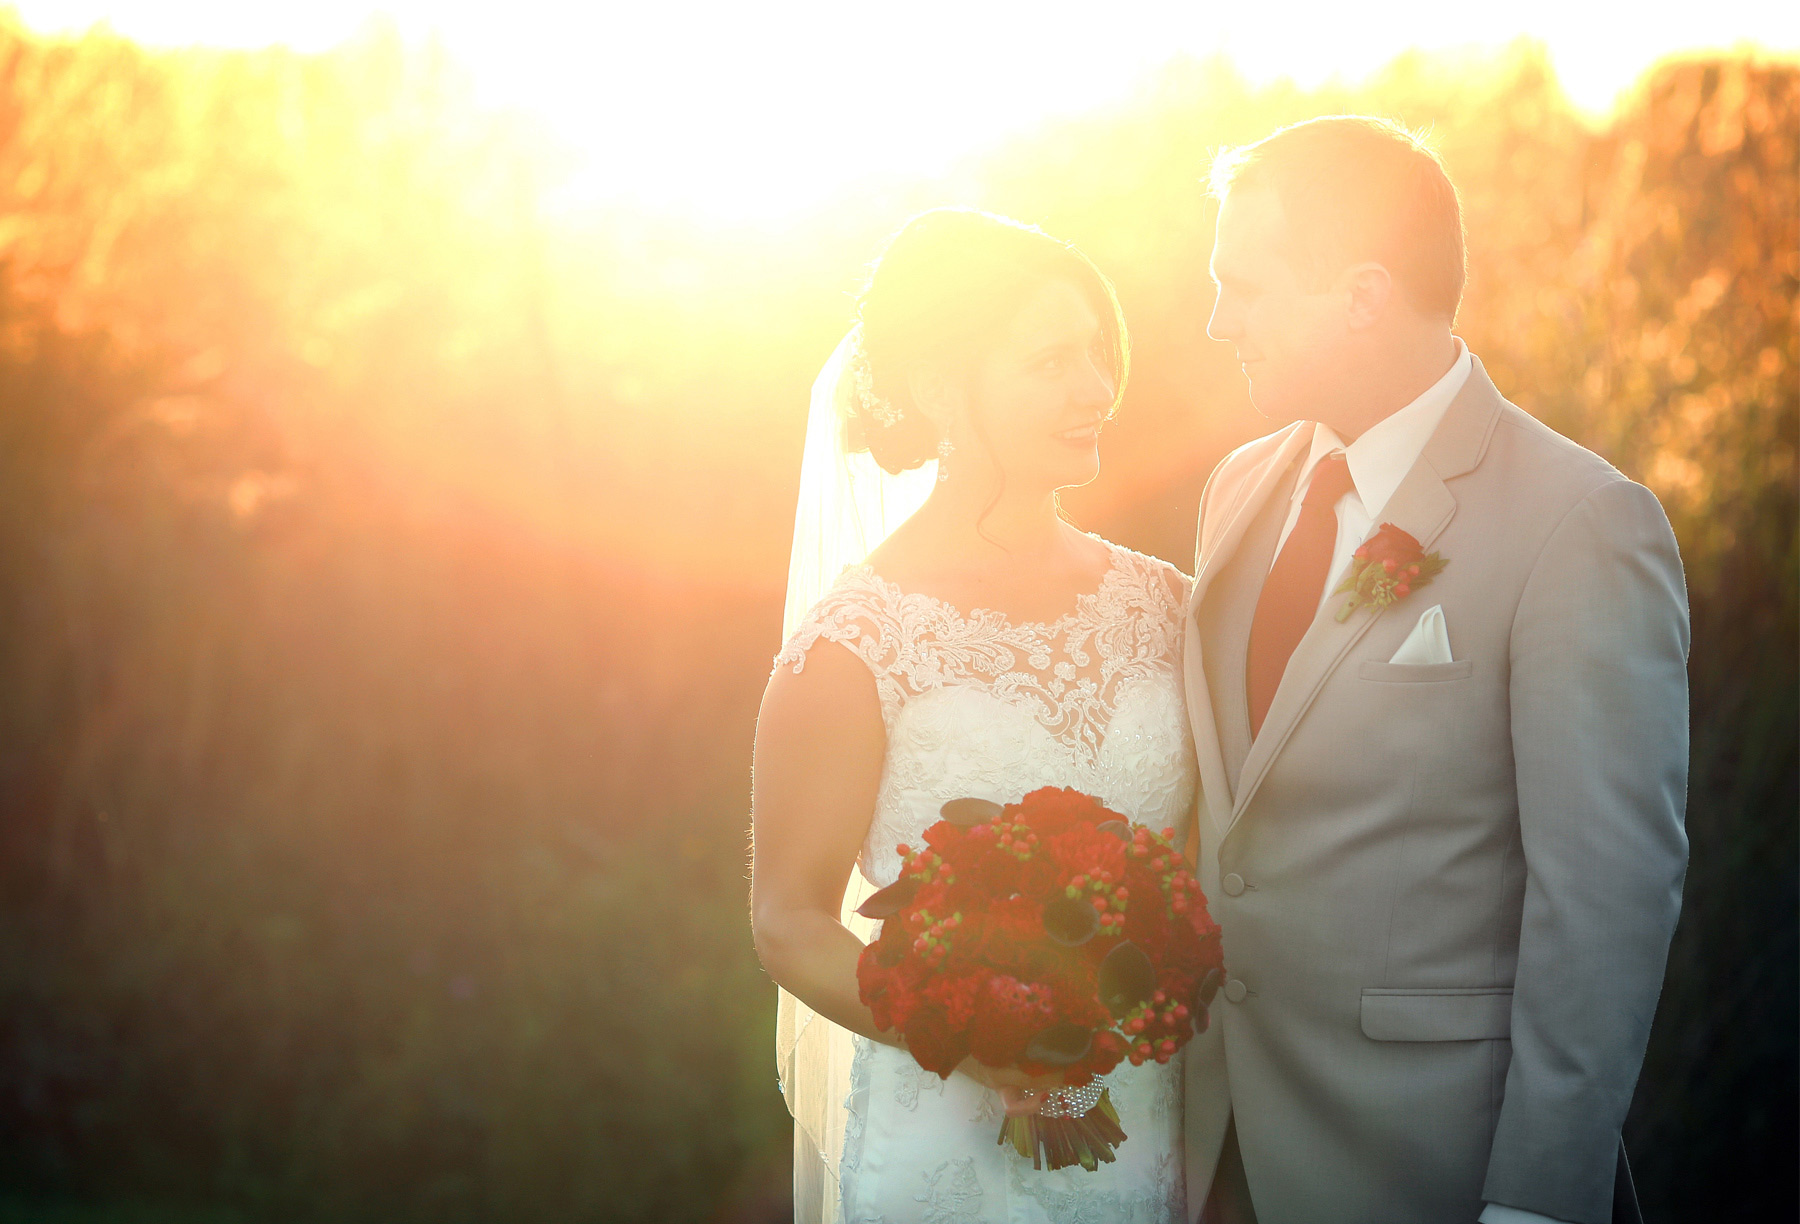 08-Minneapolis-Minnesota-Wedding-Photography-by-Vick-Photography-Golden-Hour-Field-Garden-Courtney-and-Kevin.jpg